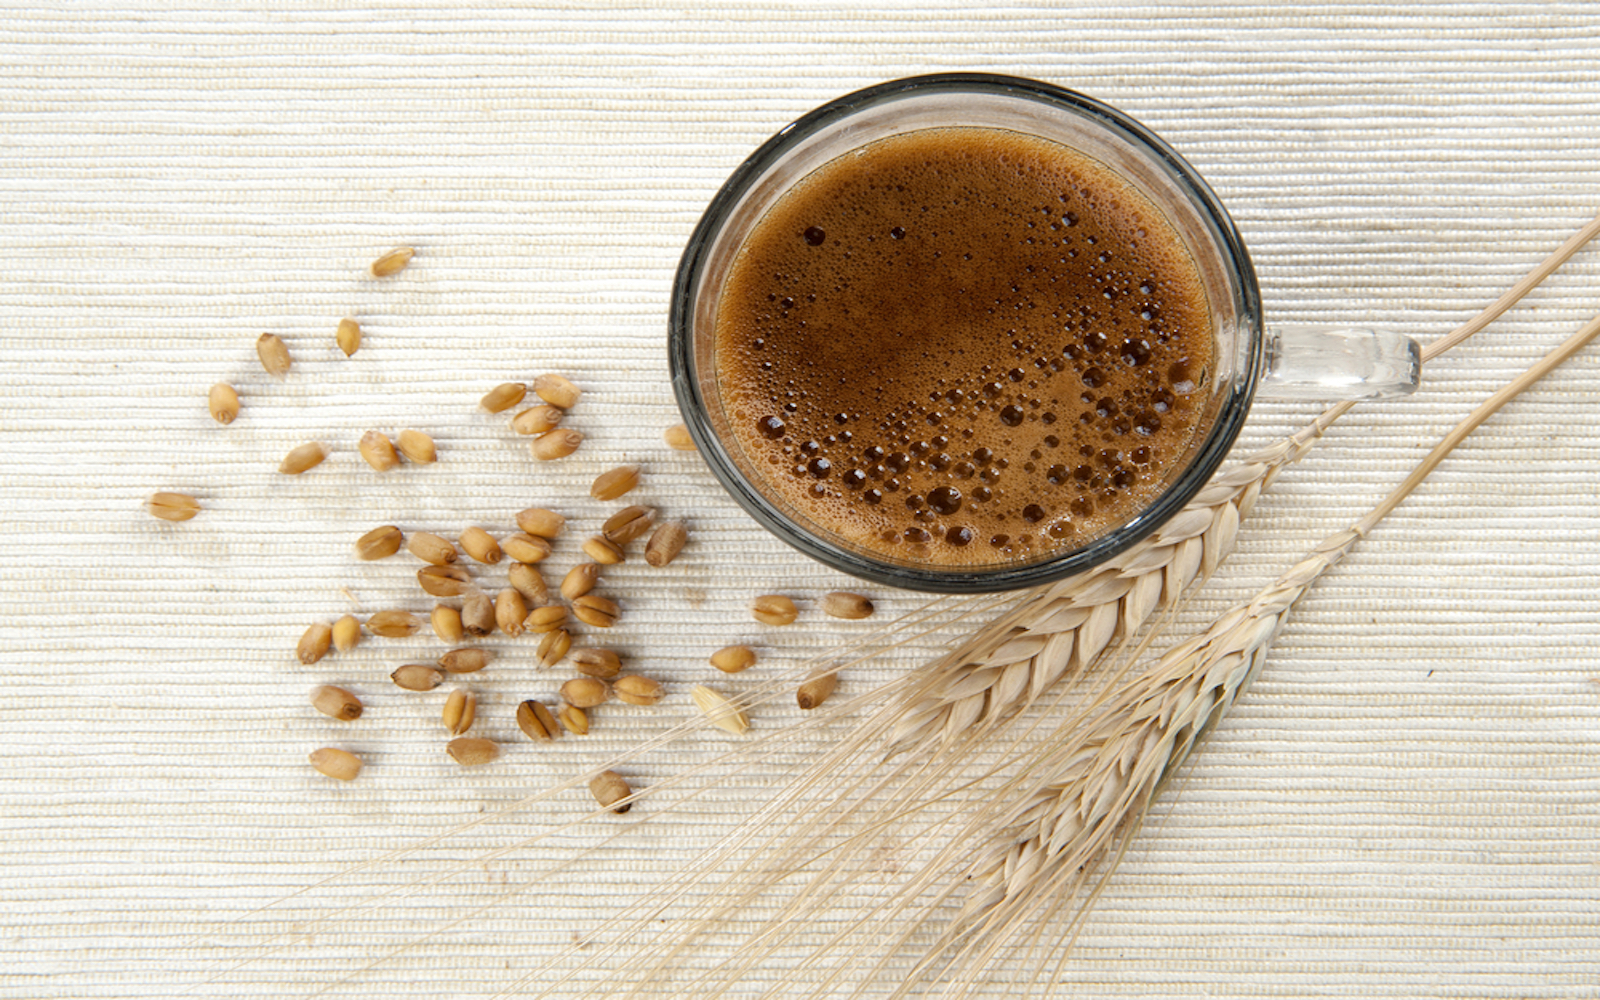 barley coffee vegan beverage